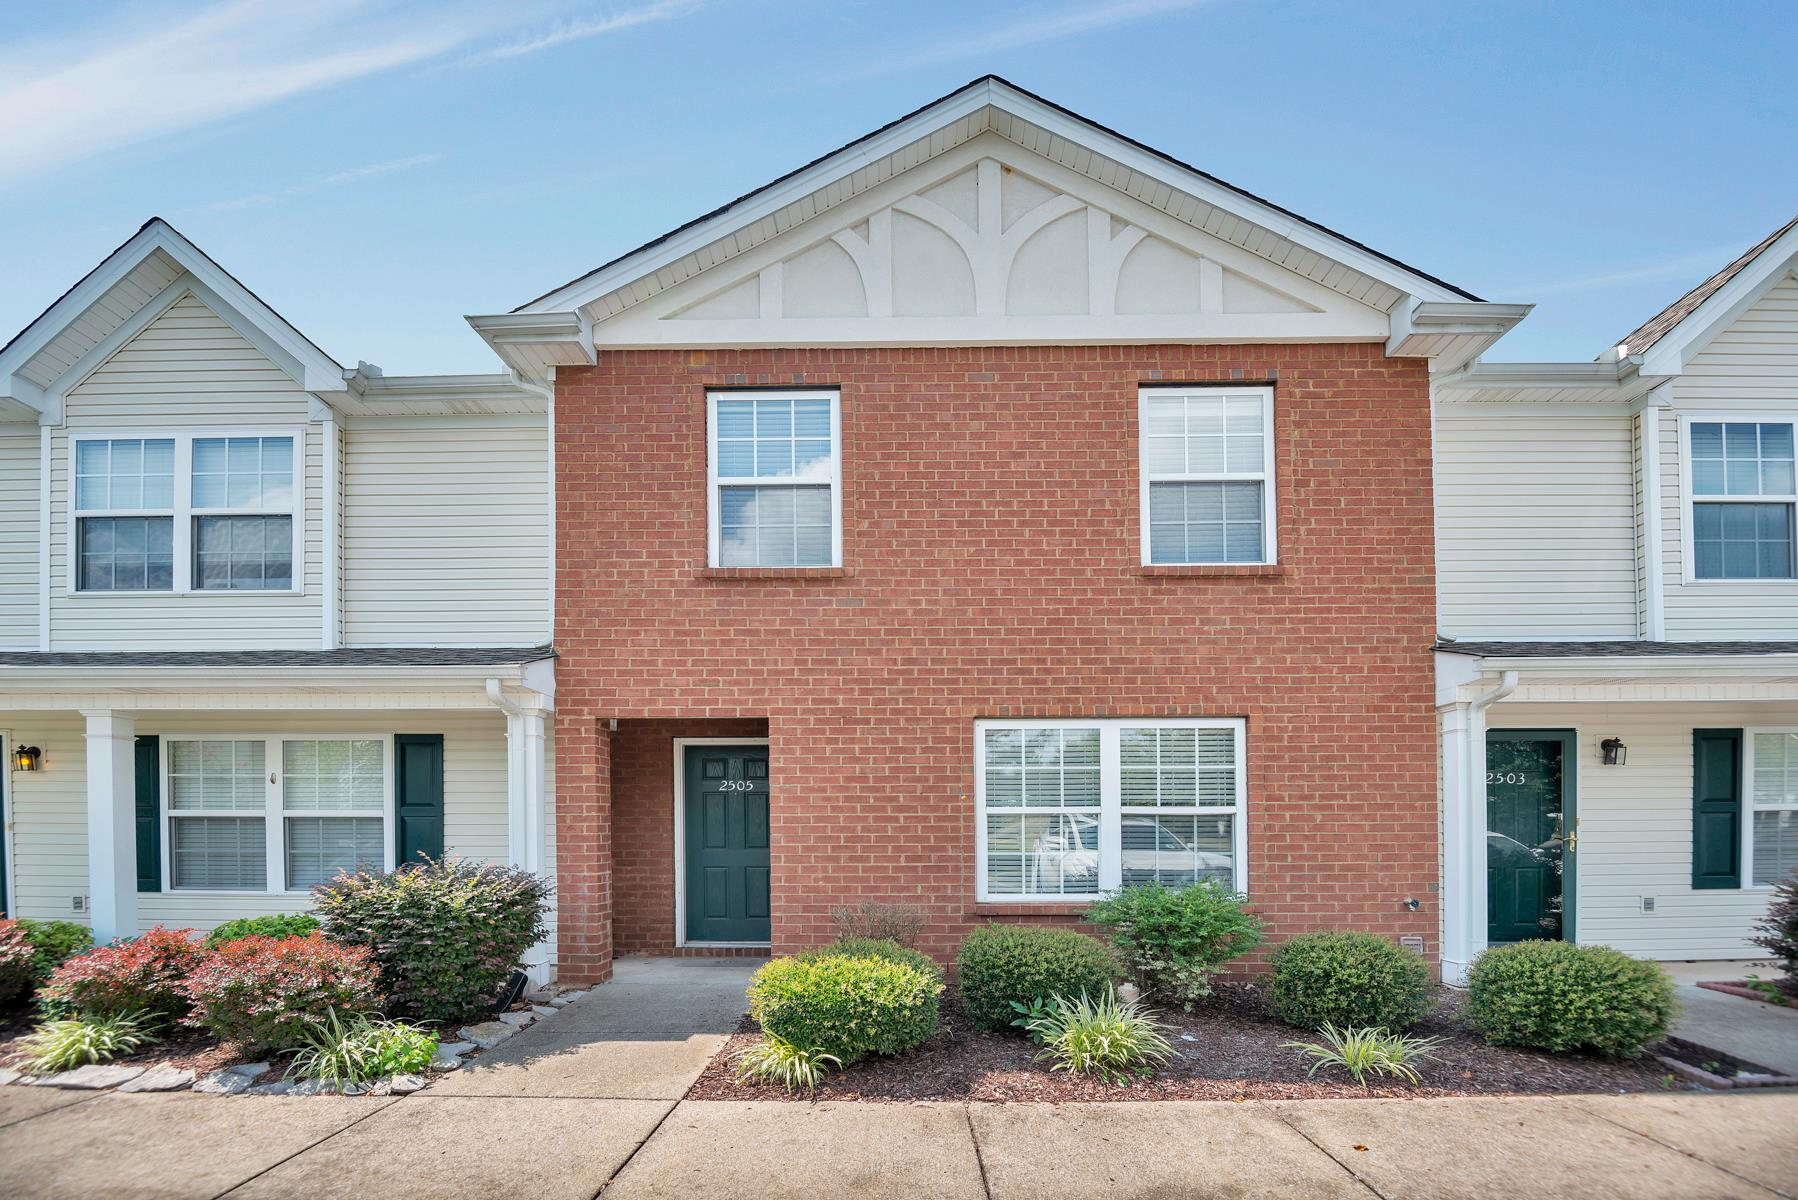 2505 Comanche Way, Murfreesboro, TN 37128 - Murfreesboro, TN real estate listing